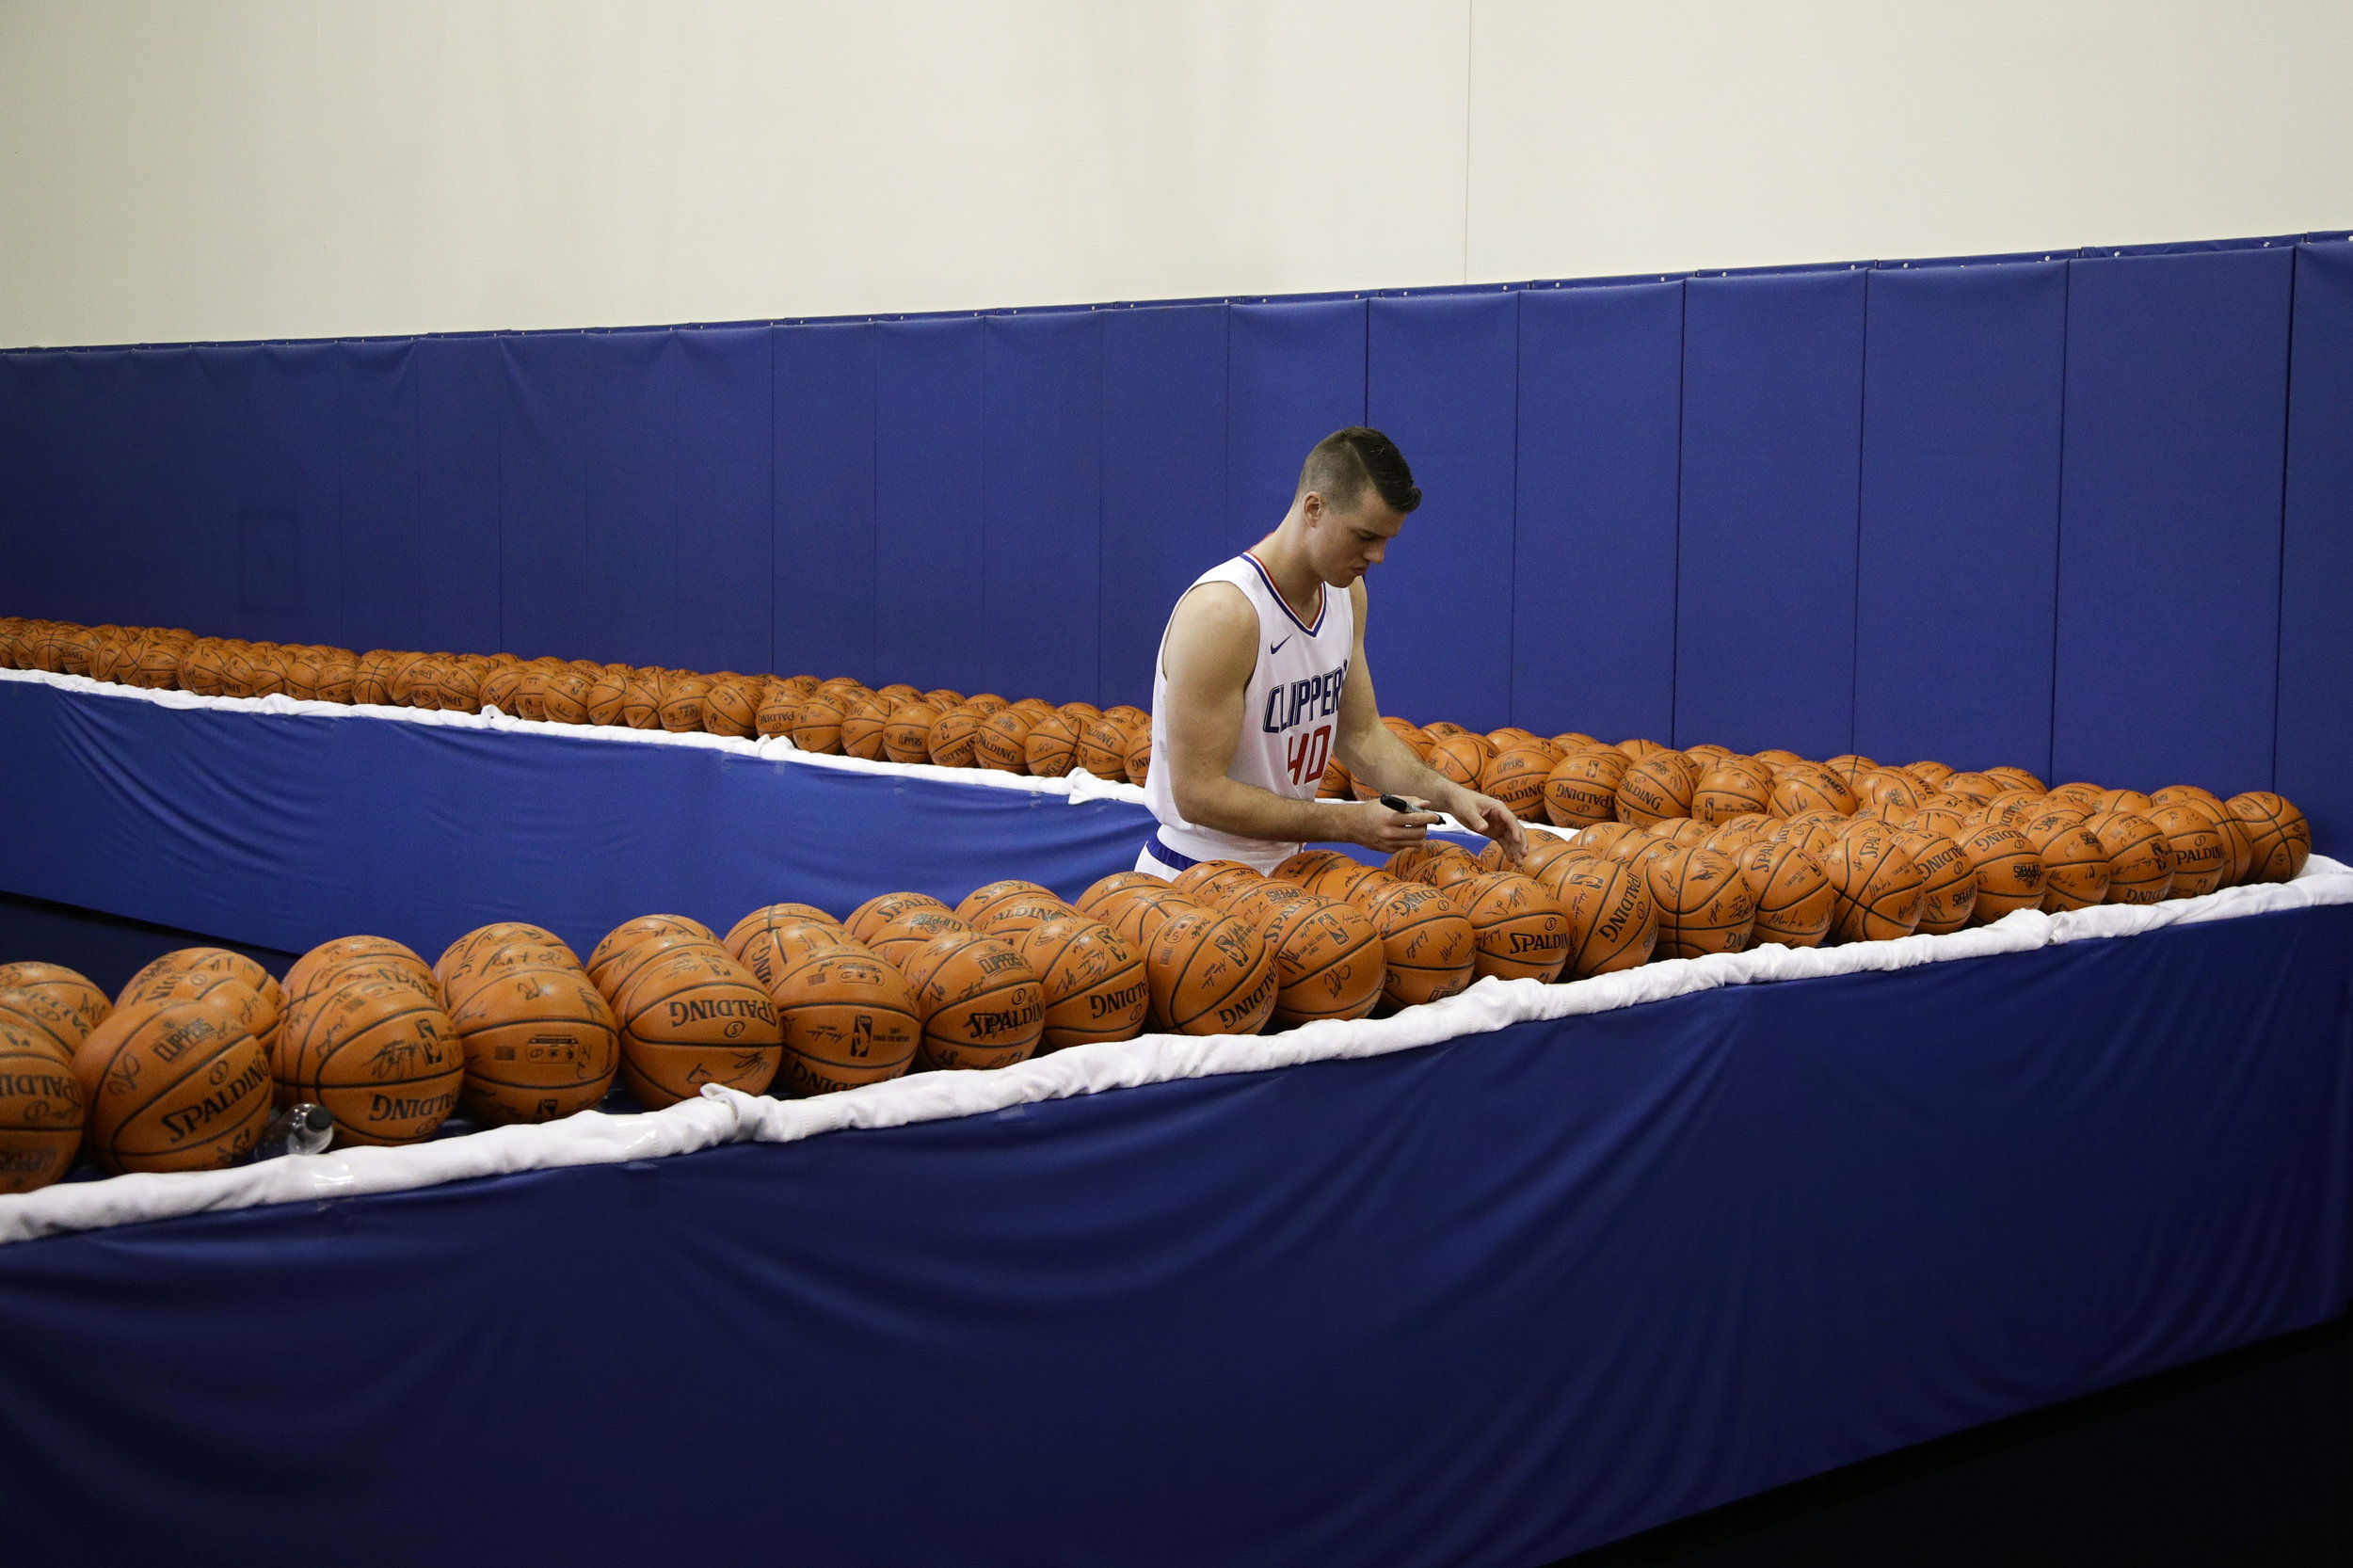 Clippers Media Day Basketball